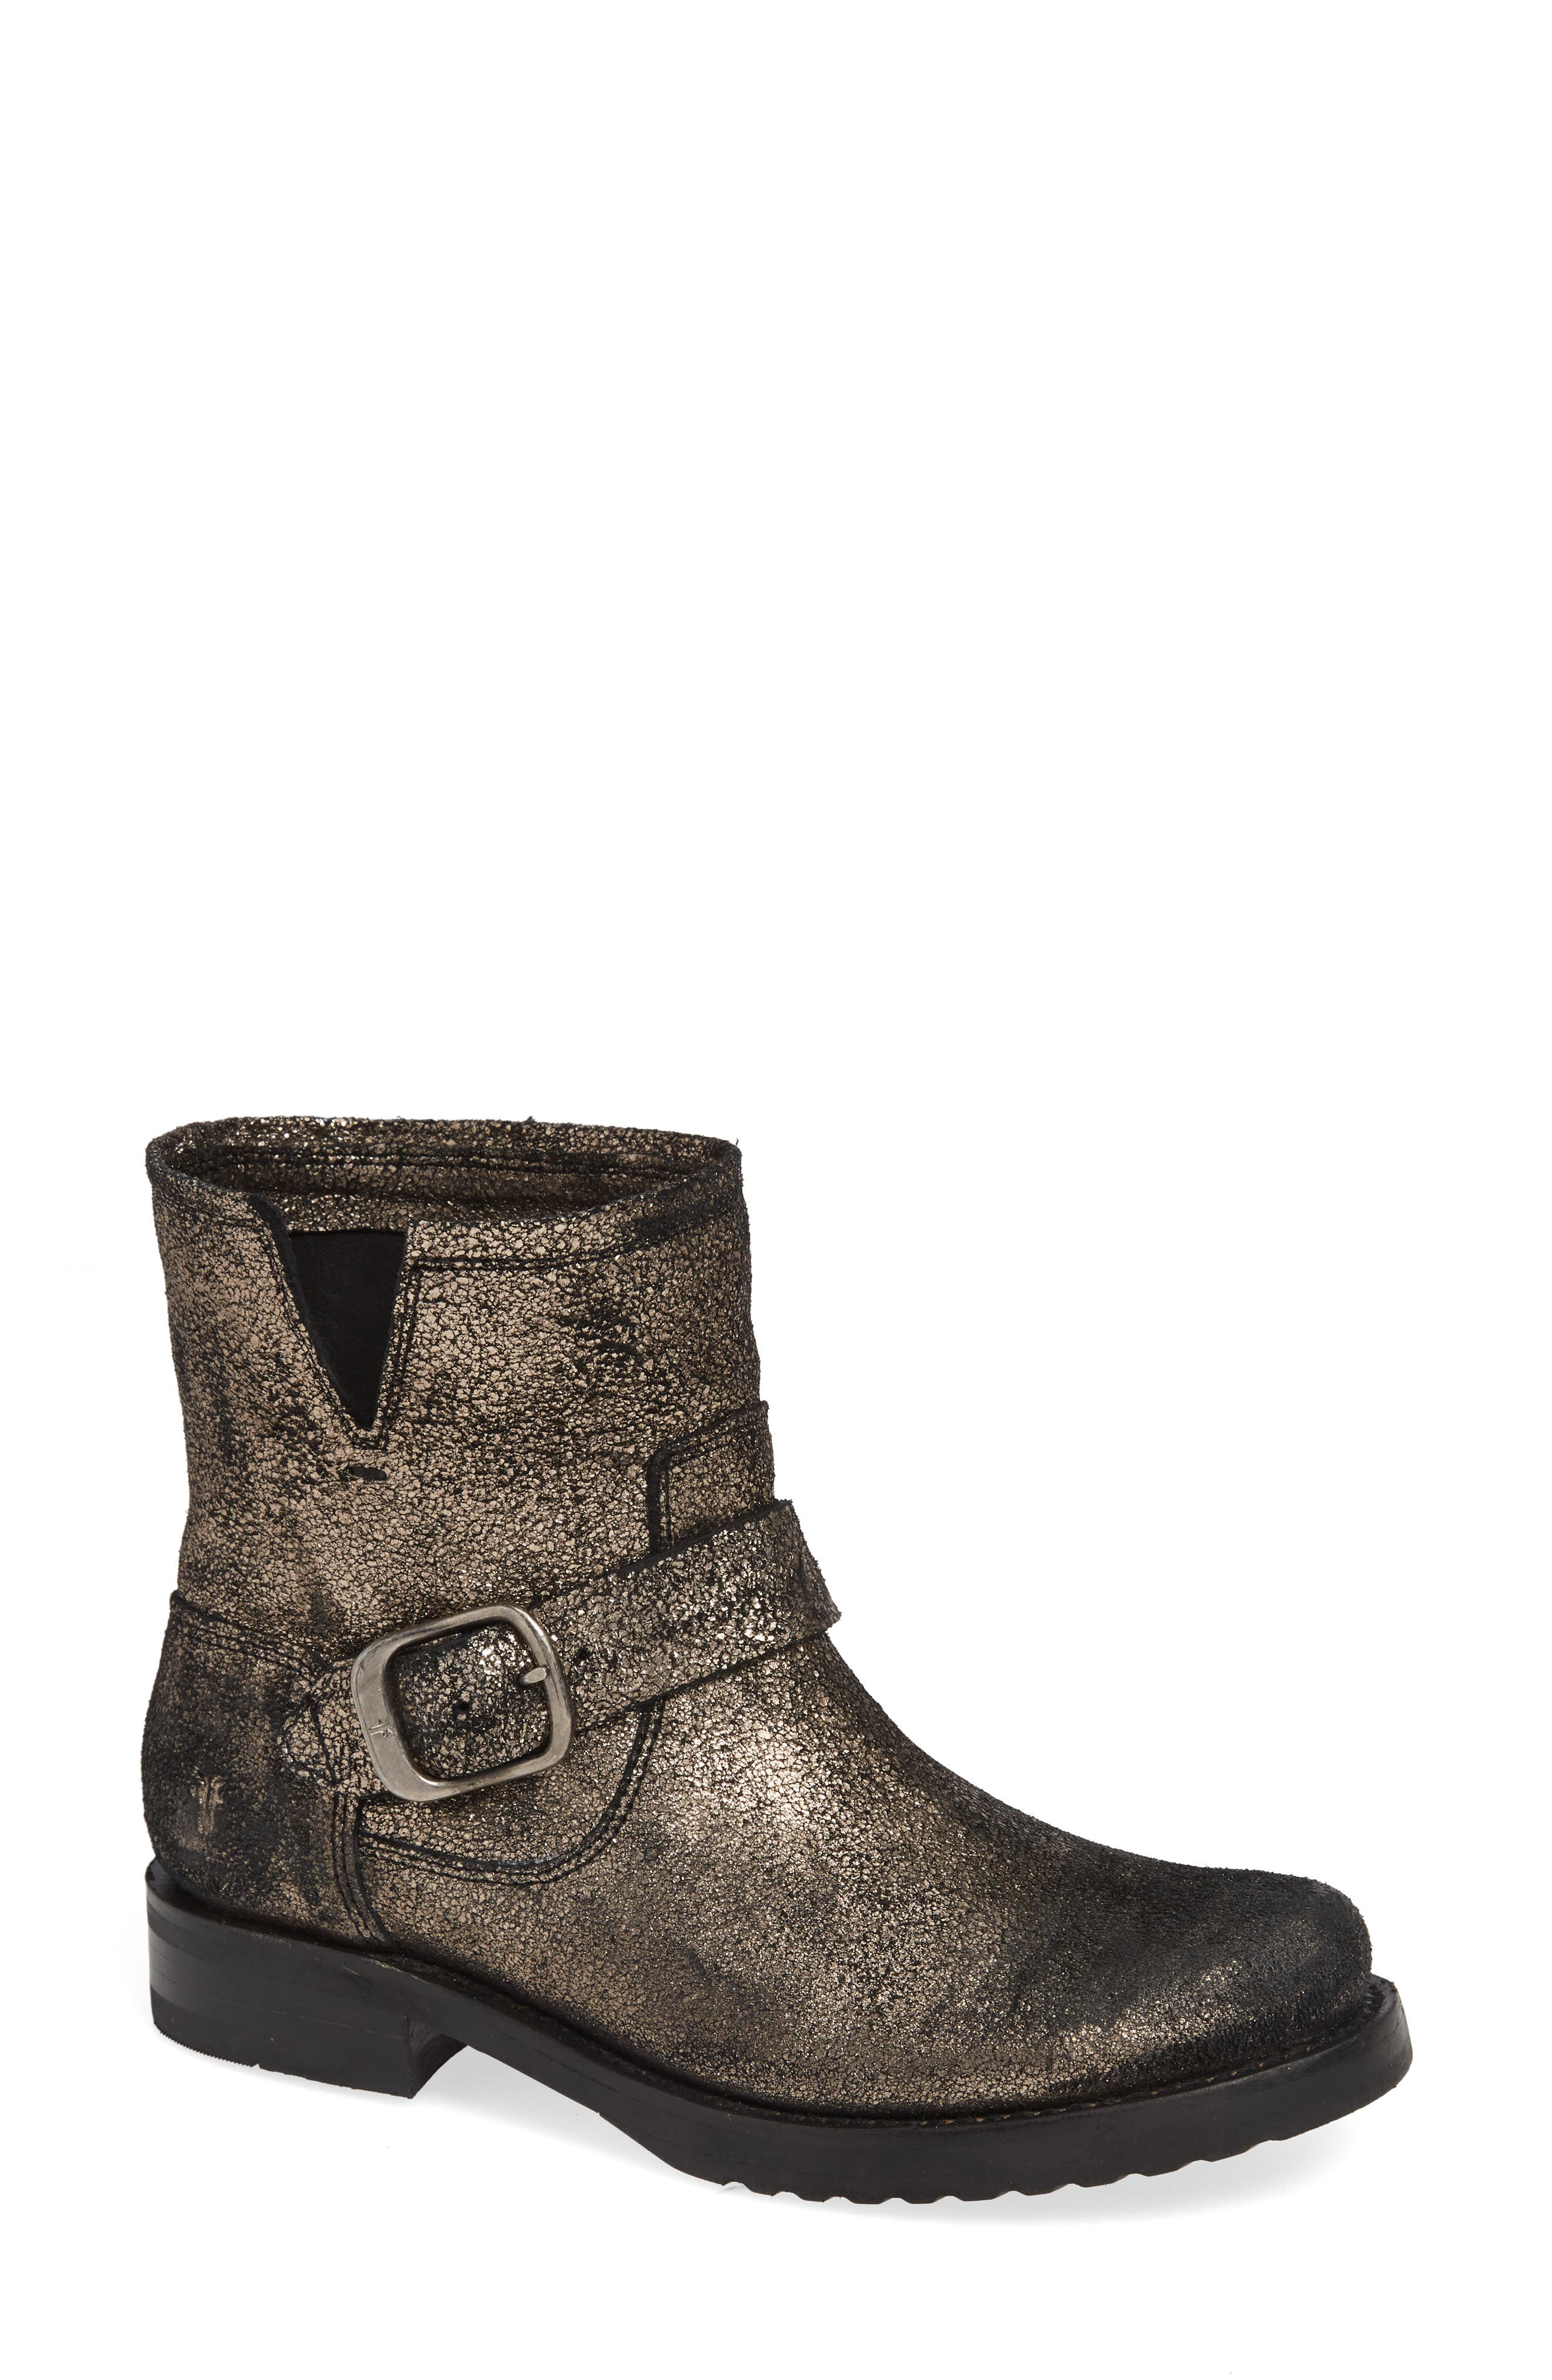 Veronica Bootie,                         Main,                         color, GOLD LEATHER